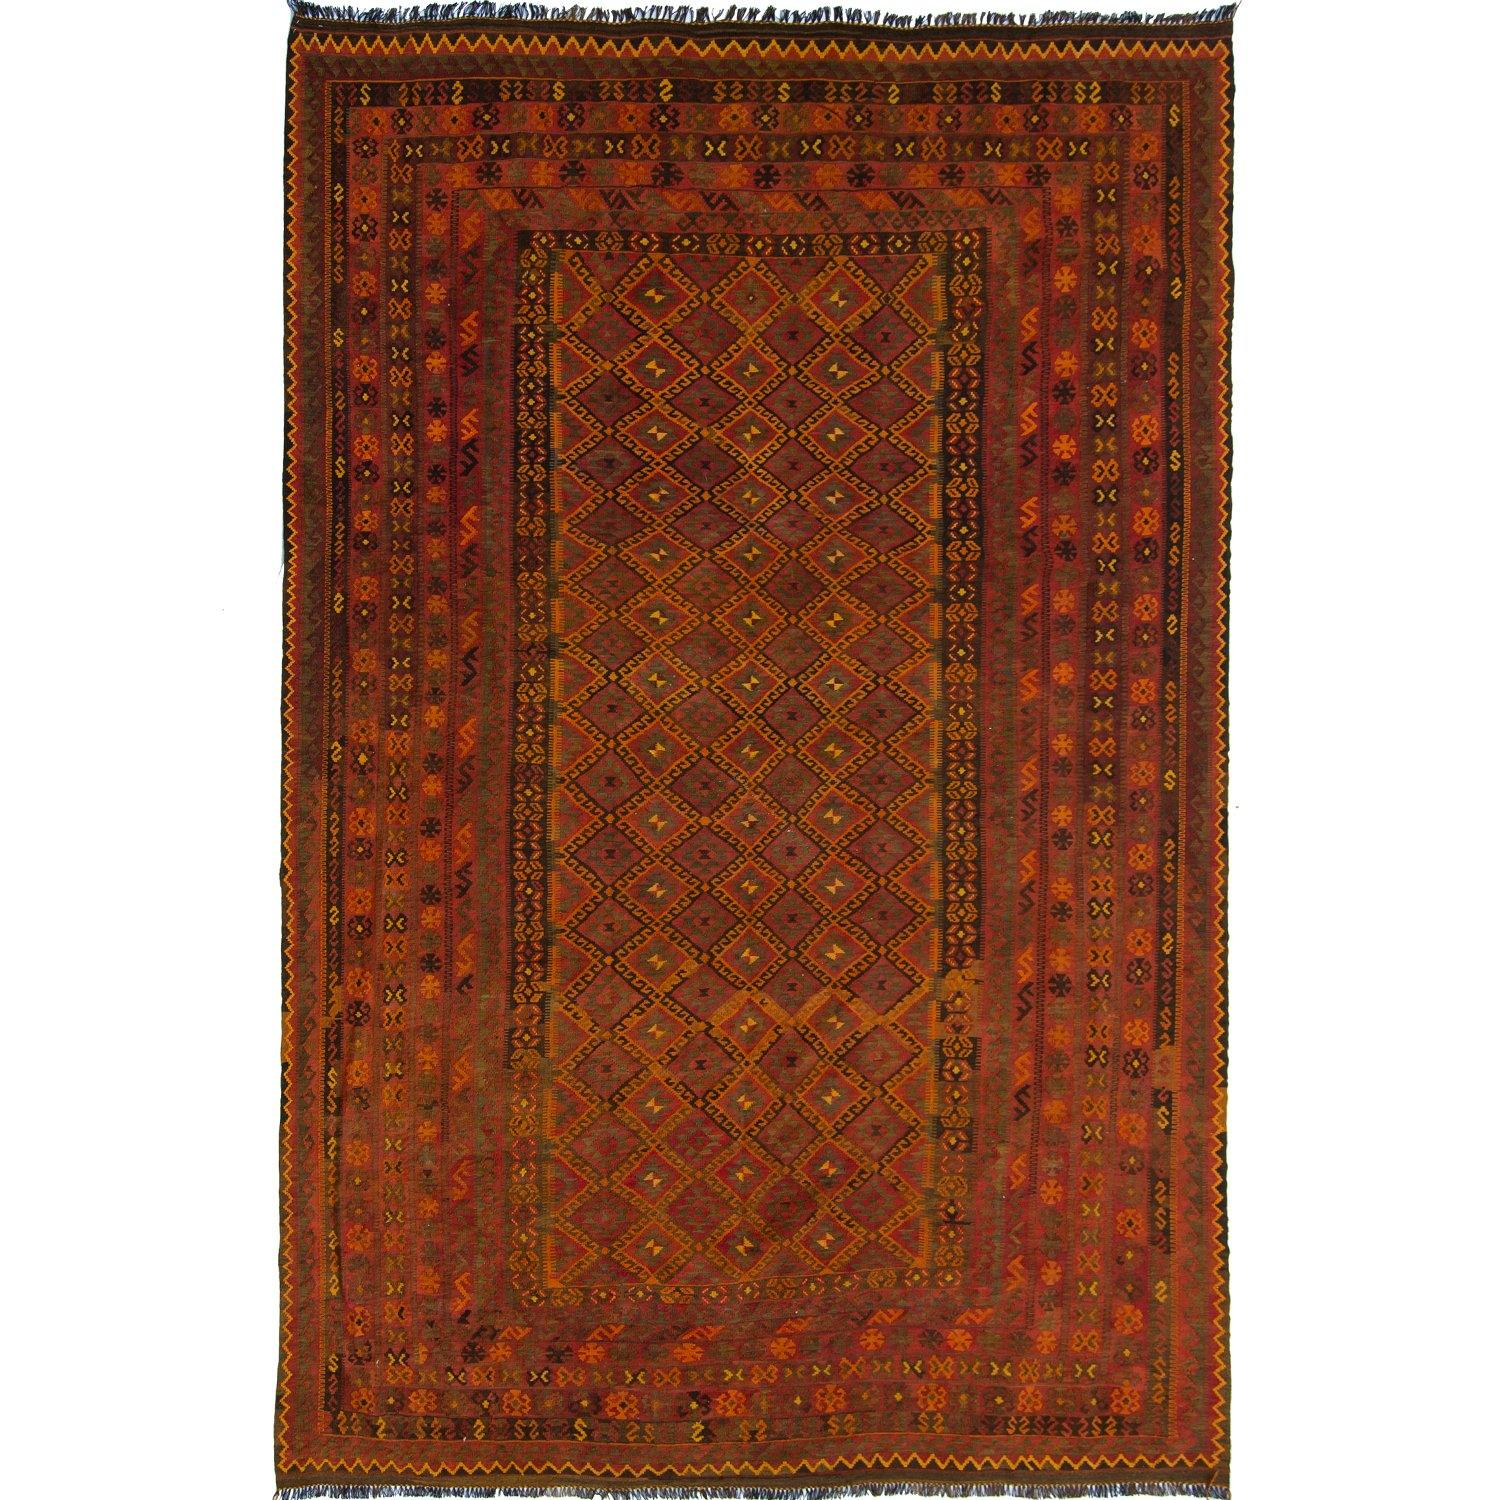 Fine Hand-Woven 100% Kilim Shiraz Rug 264cm x 400cm Persian-Rug | House-of-Haghi | NewMarket | Auckland | NZ | Handmade Persian Rugs | Hand Knotted Persian Rugs